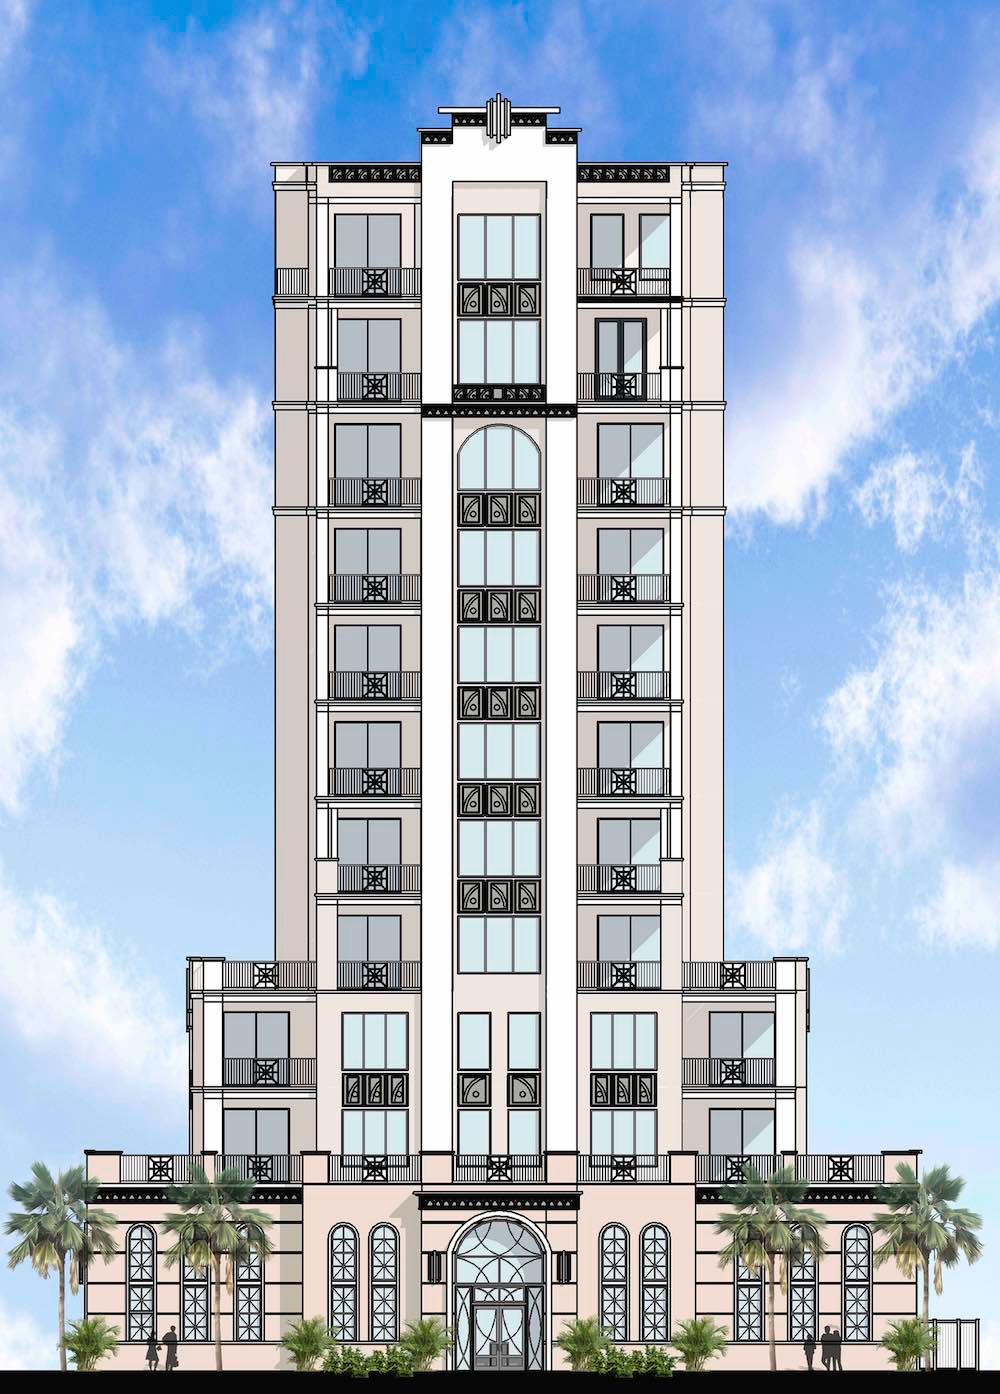 An elevation of The Perry, a 12-story 20-unit condo tower proposed for 136 4th Ave NE in Downtown St Petersburg, FL